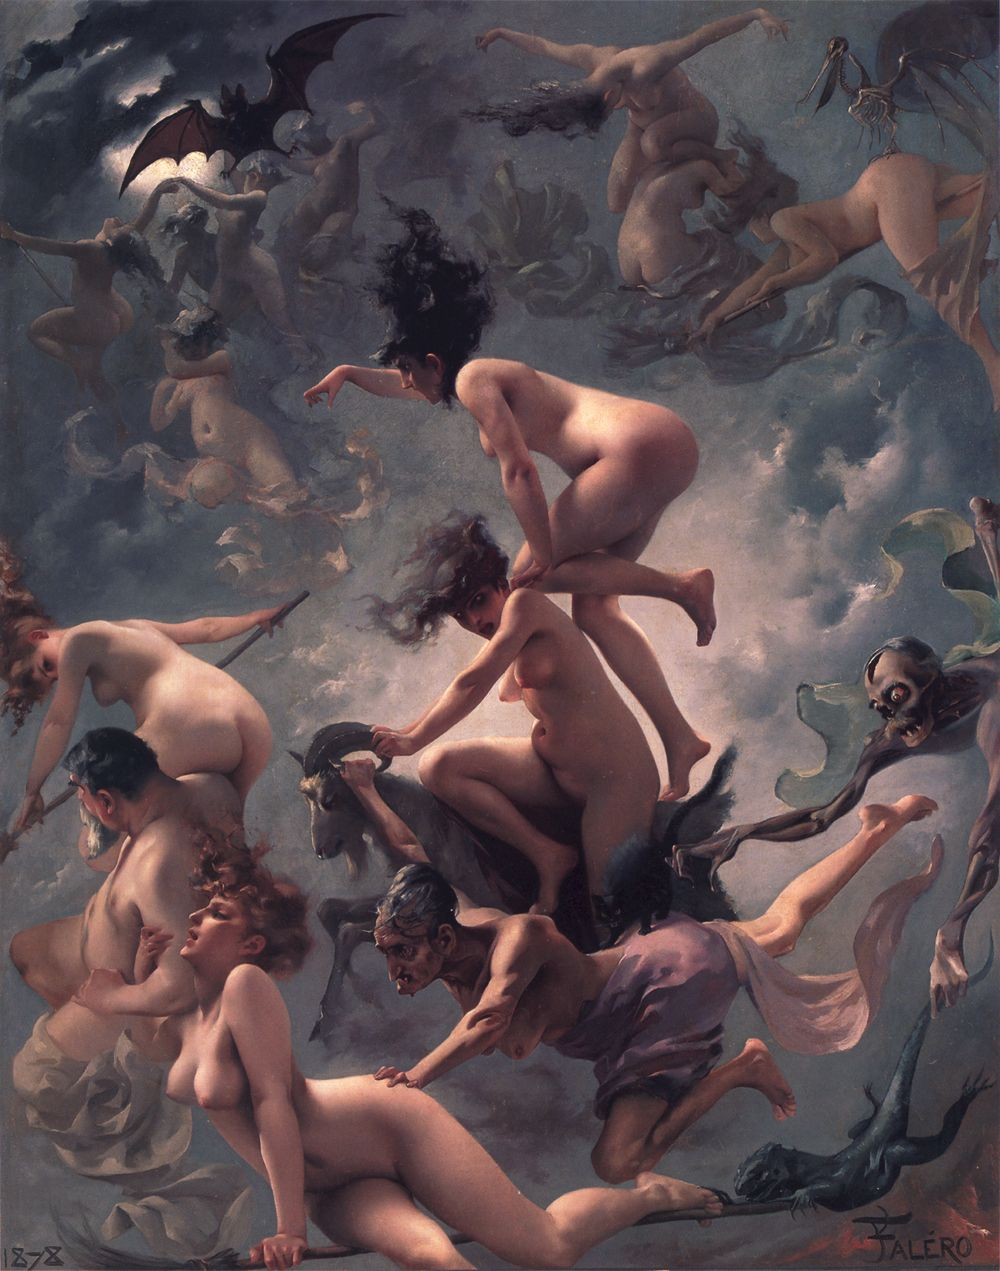 nude witches 17 Best images about The Craft on Pinterest | The shade, Martin o'malley  and The witch